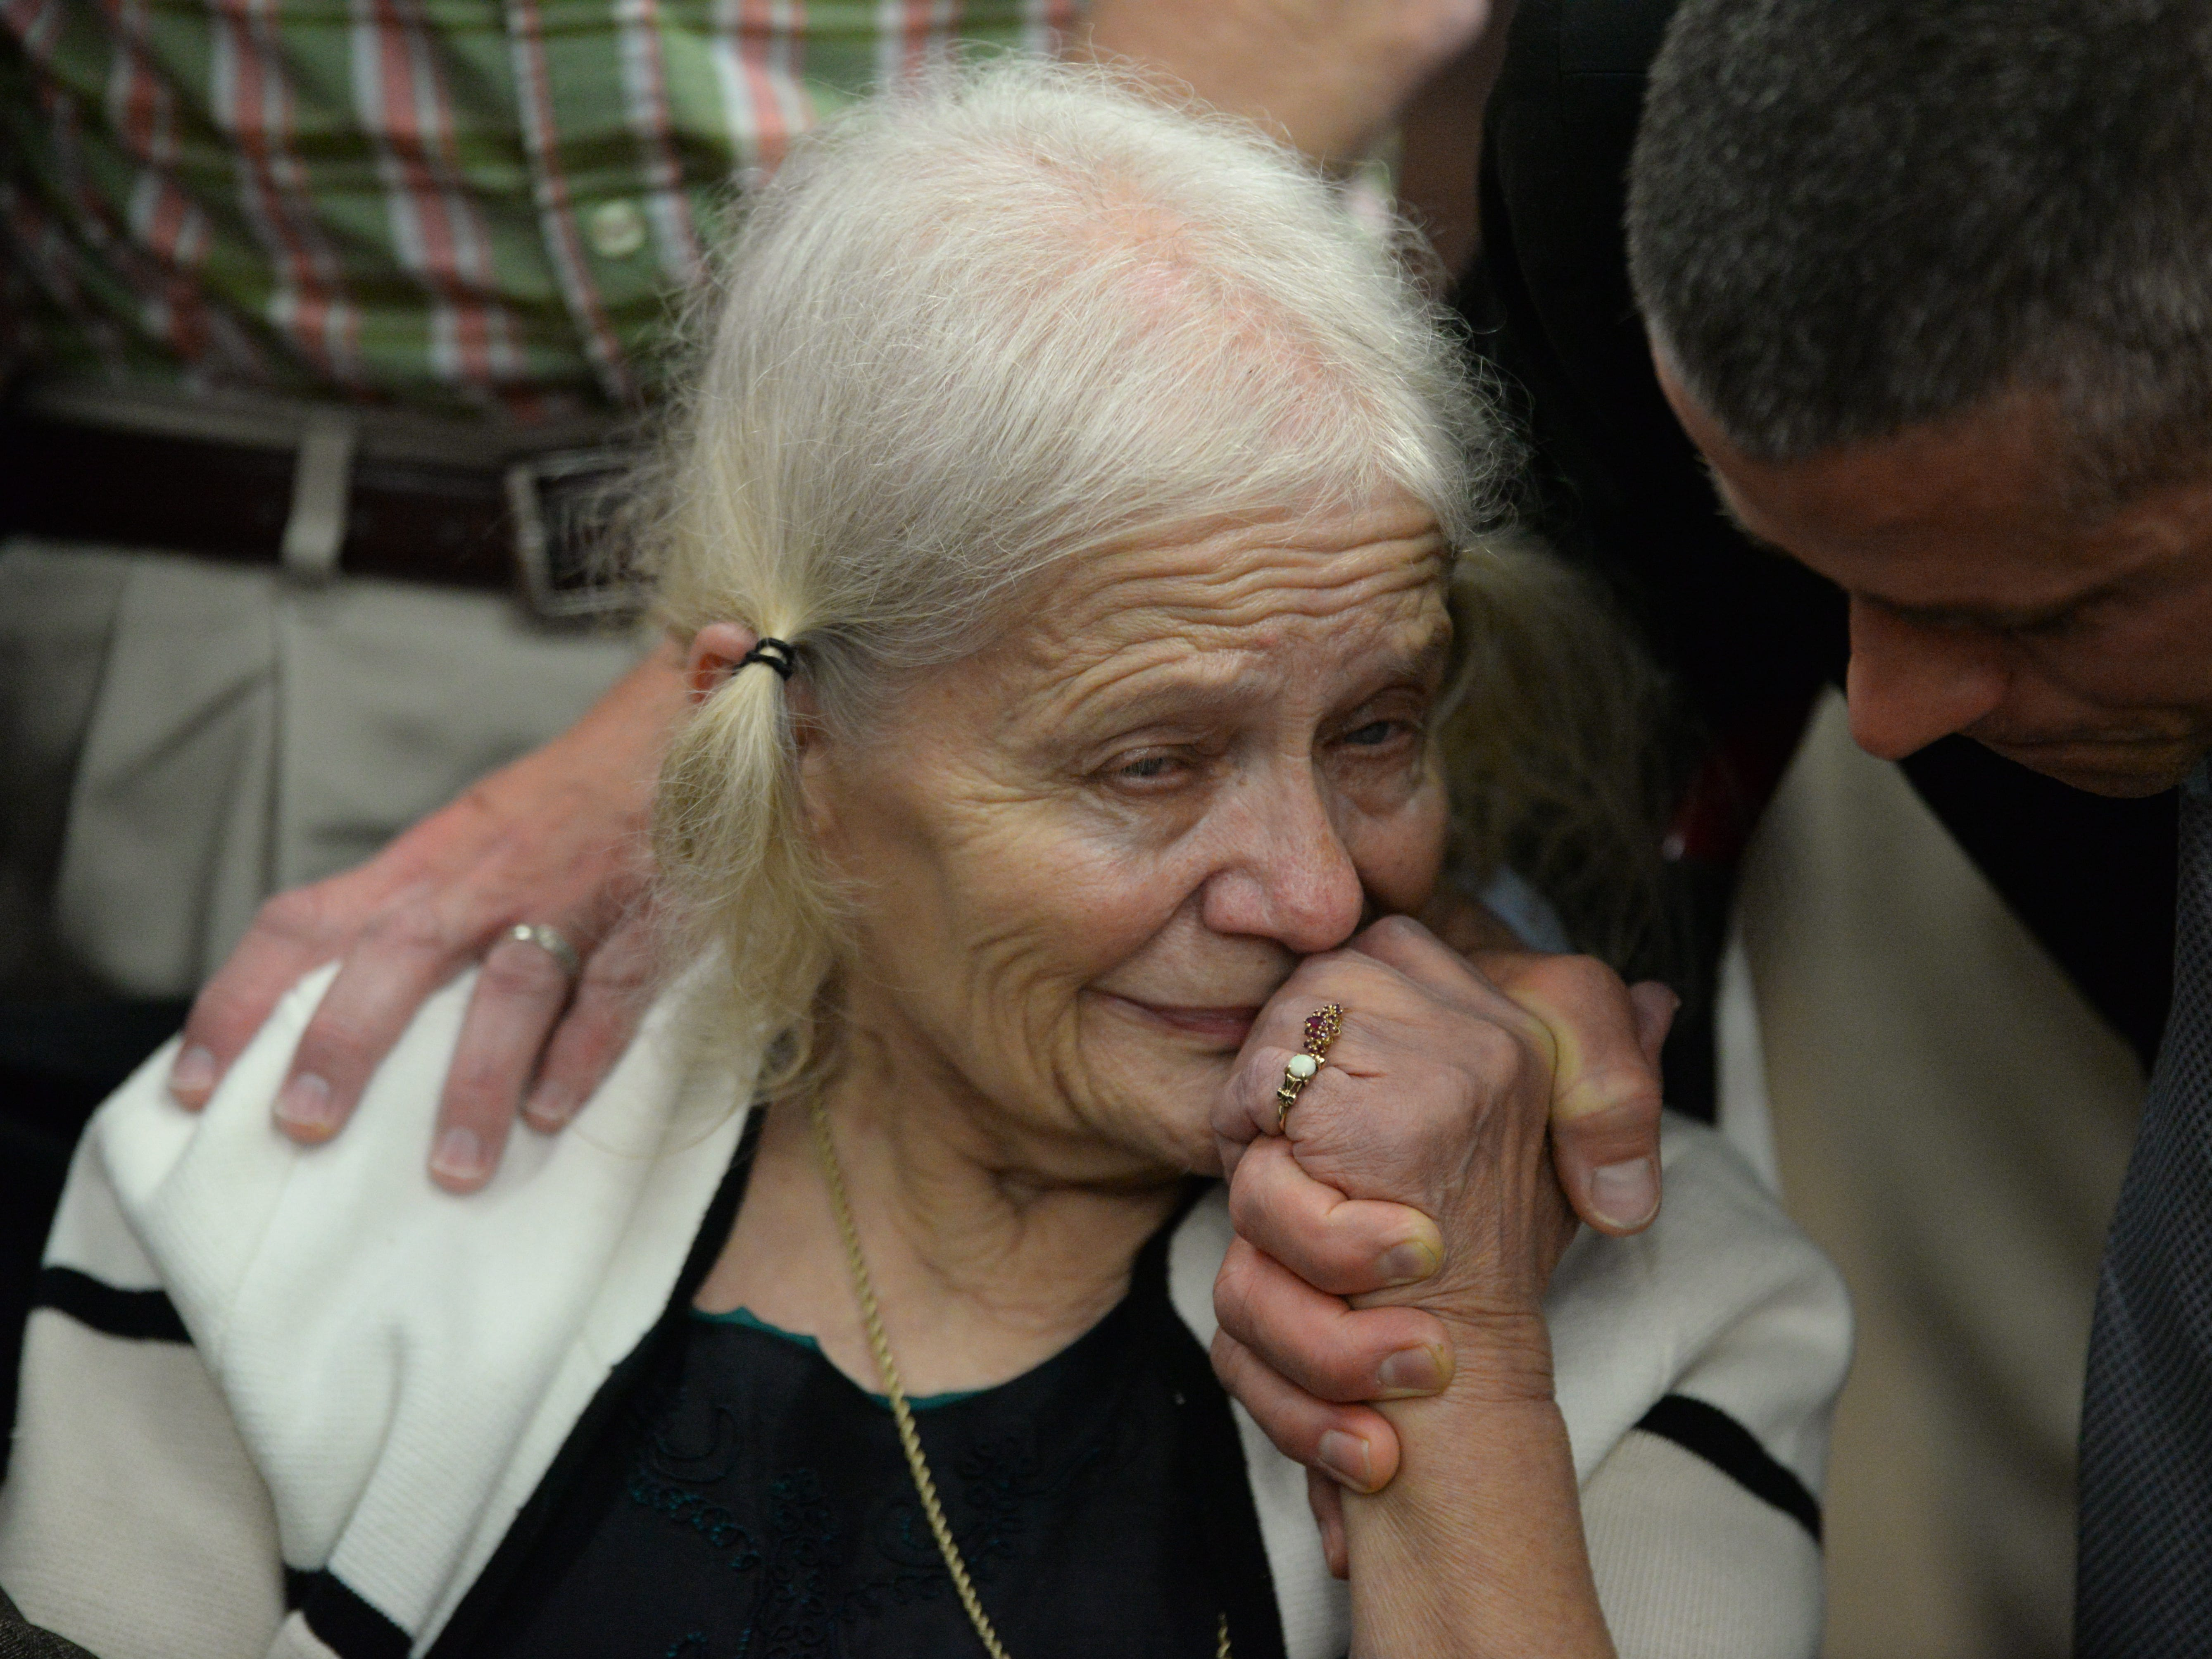 Cheryl Williams, mother of Mike Williams, is consoled as the verdict is read in the trial of Denise Williams for the murder of her husband Mike Williams at the Leon County Courthouse Friday, Dec. 14, 2018.